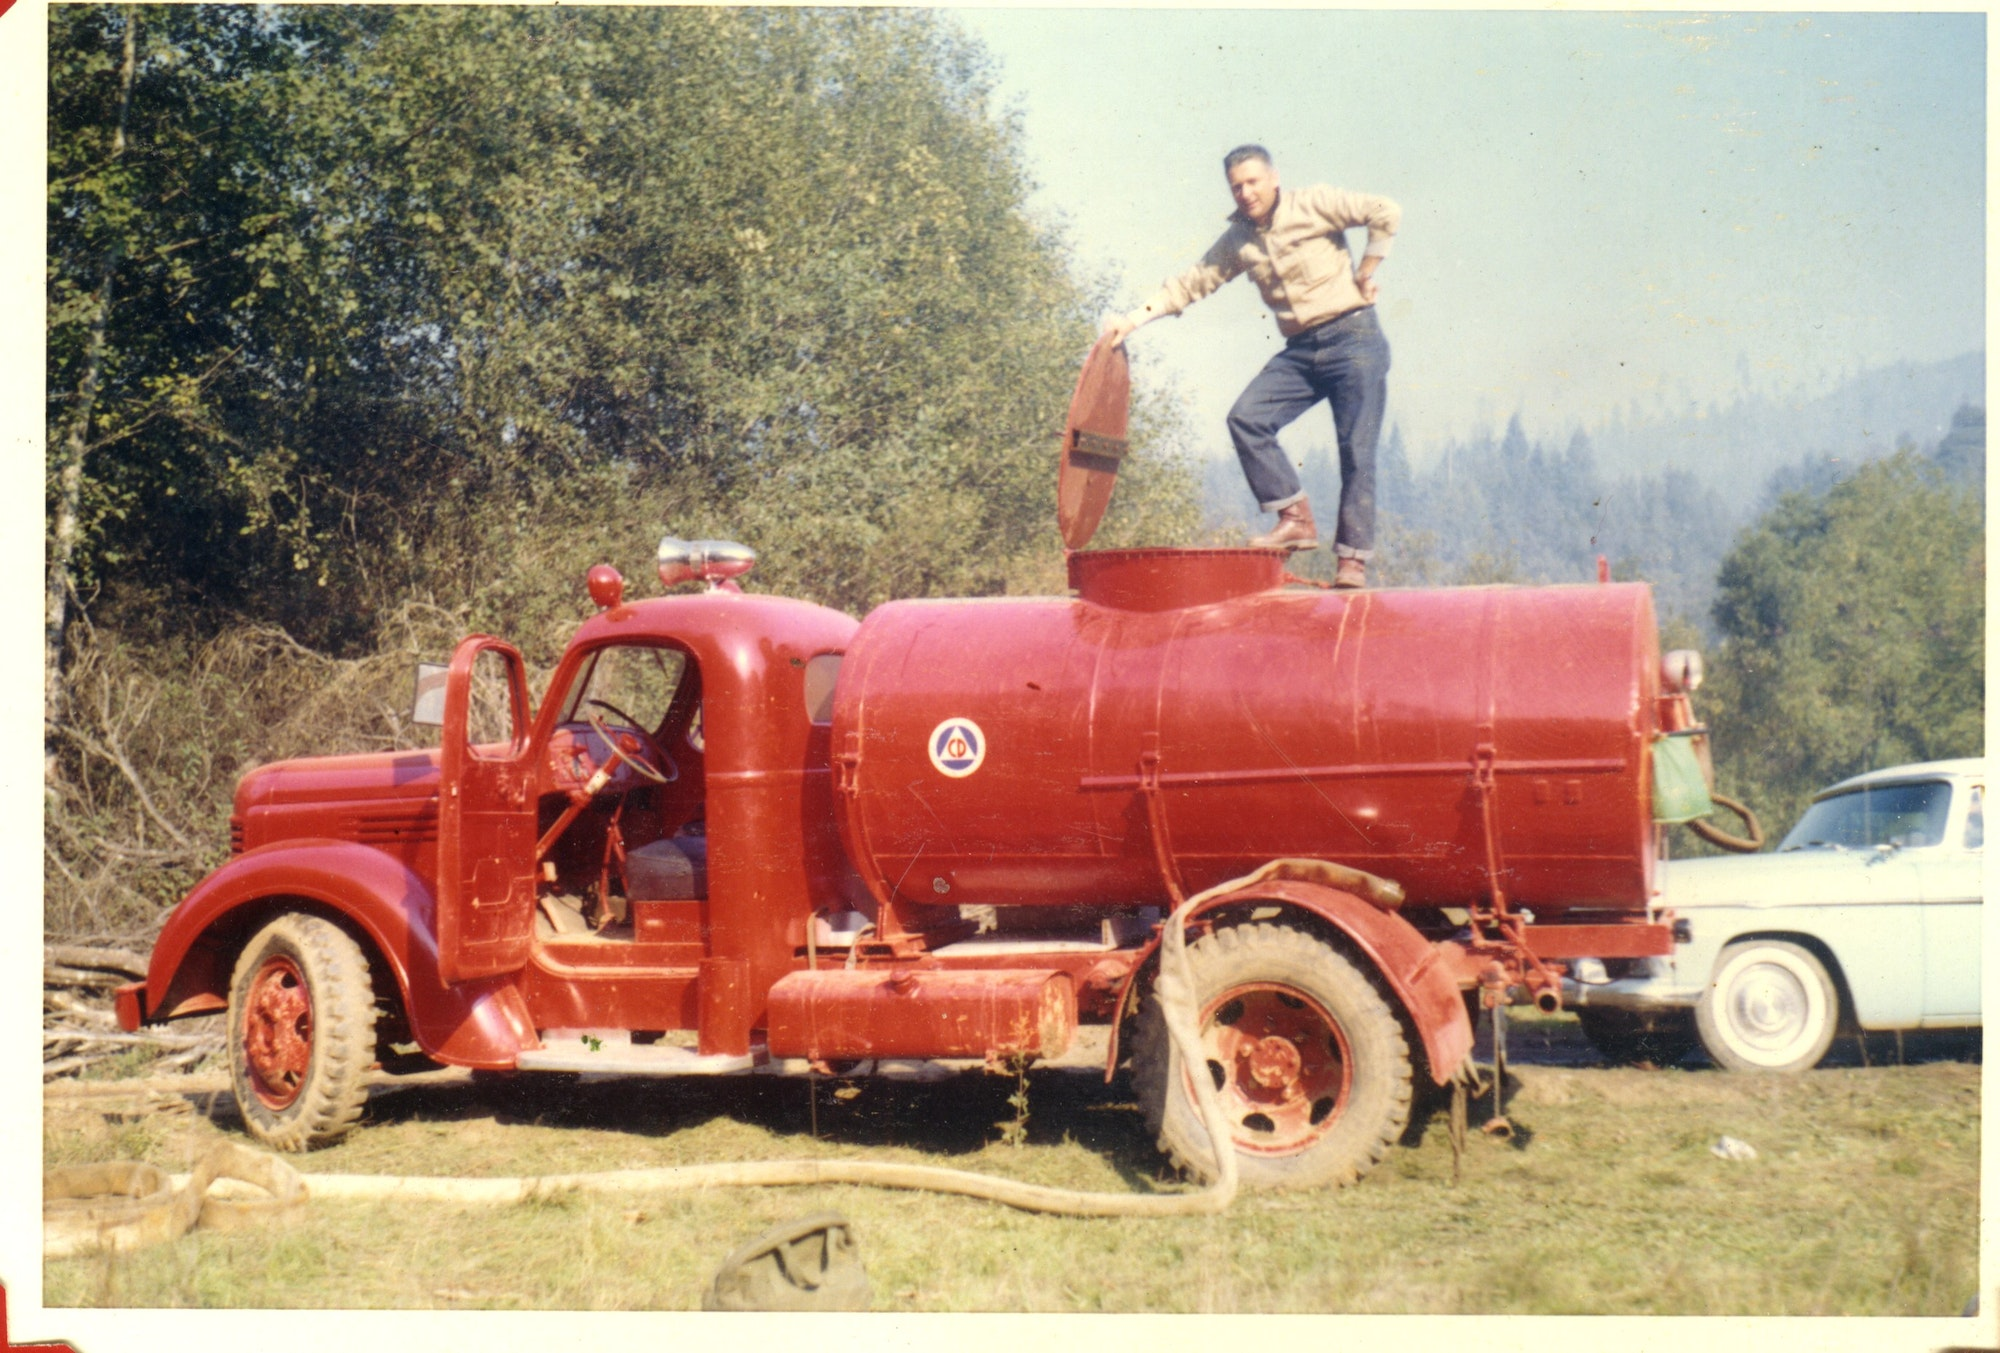 Photo of person on top of Old Water Tender 8 at an incident.